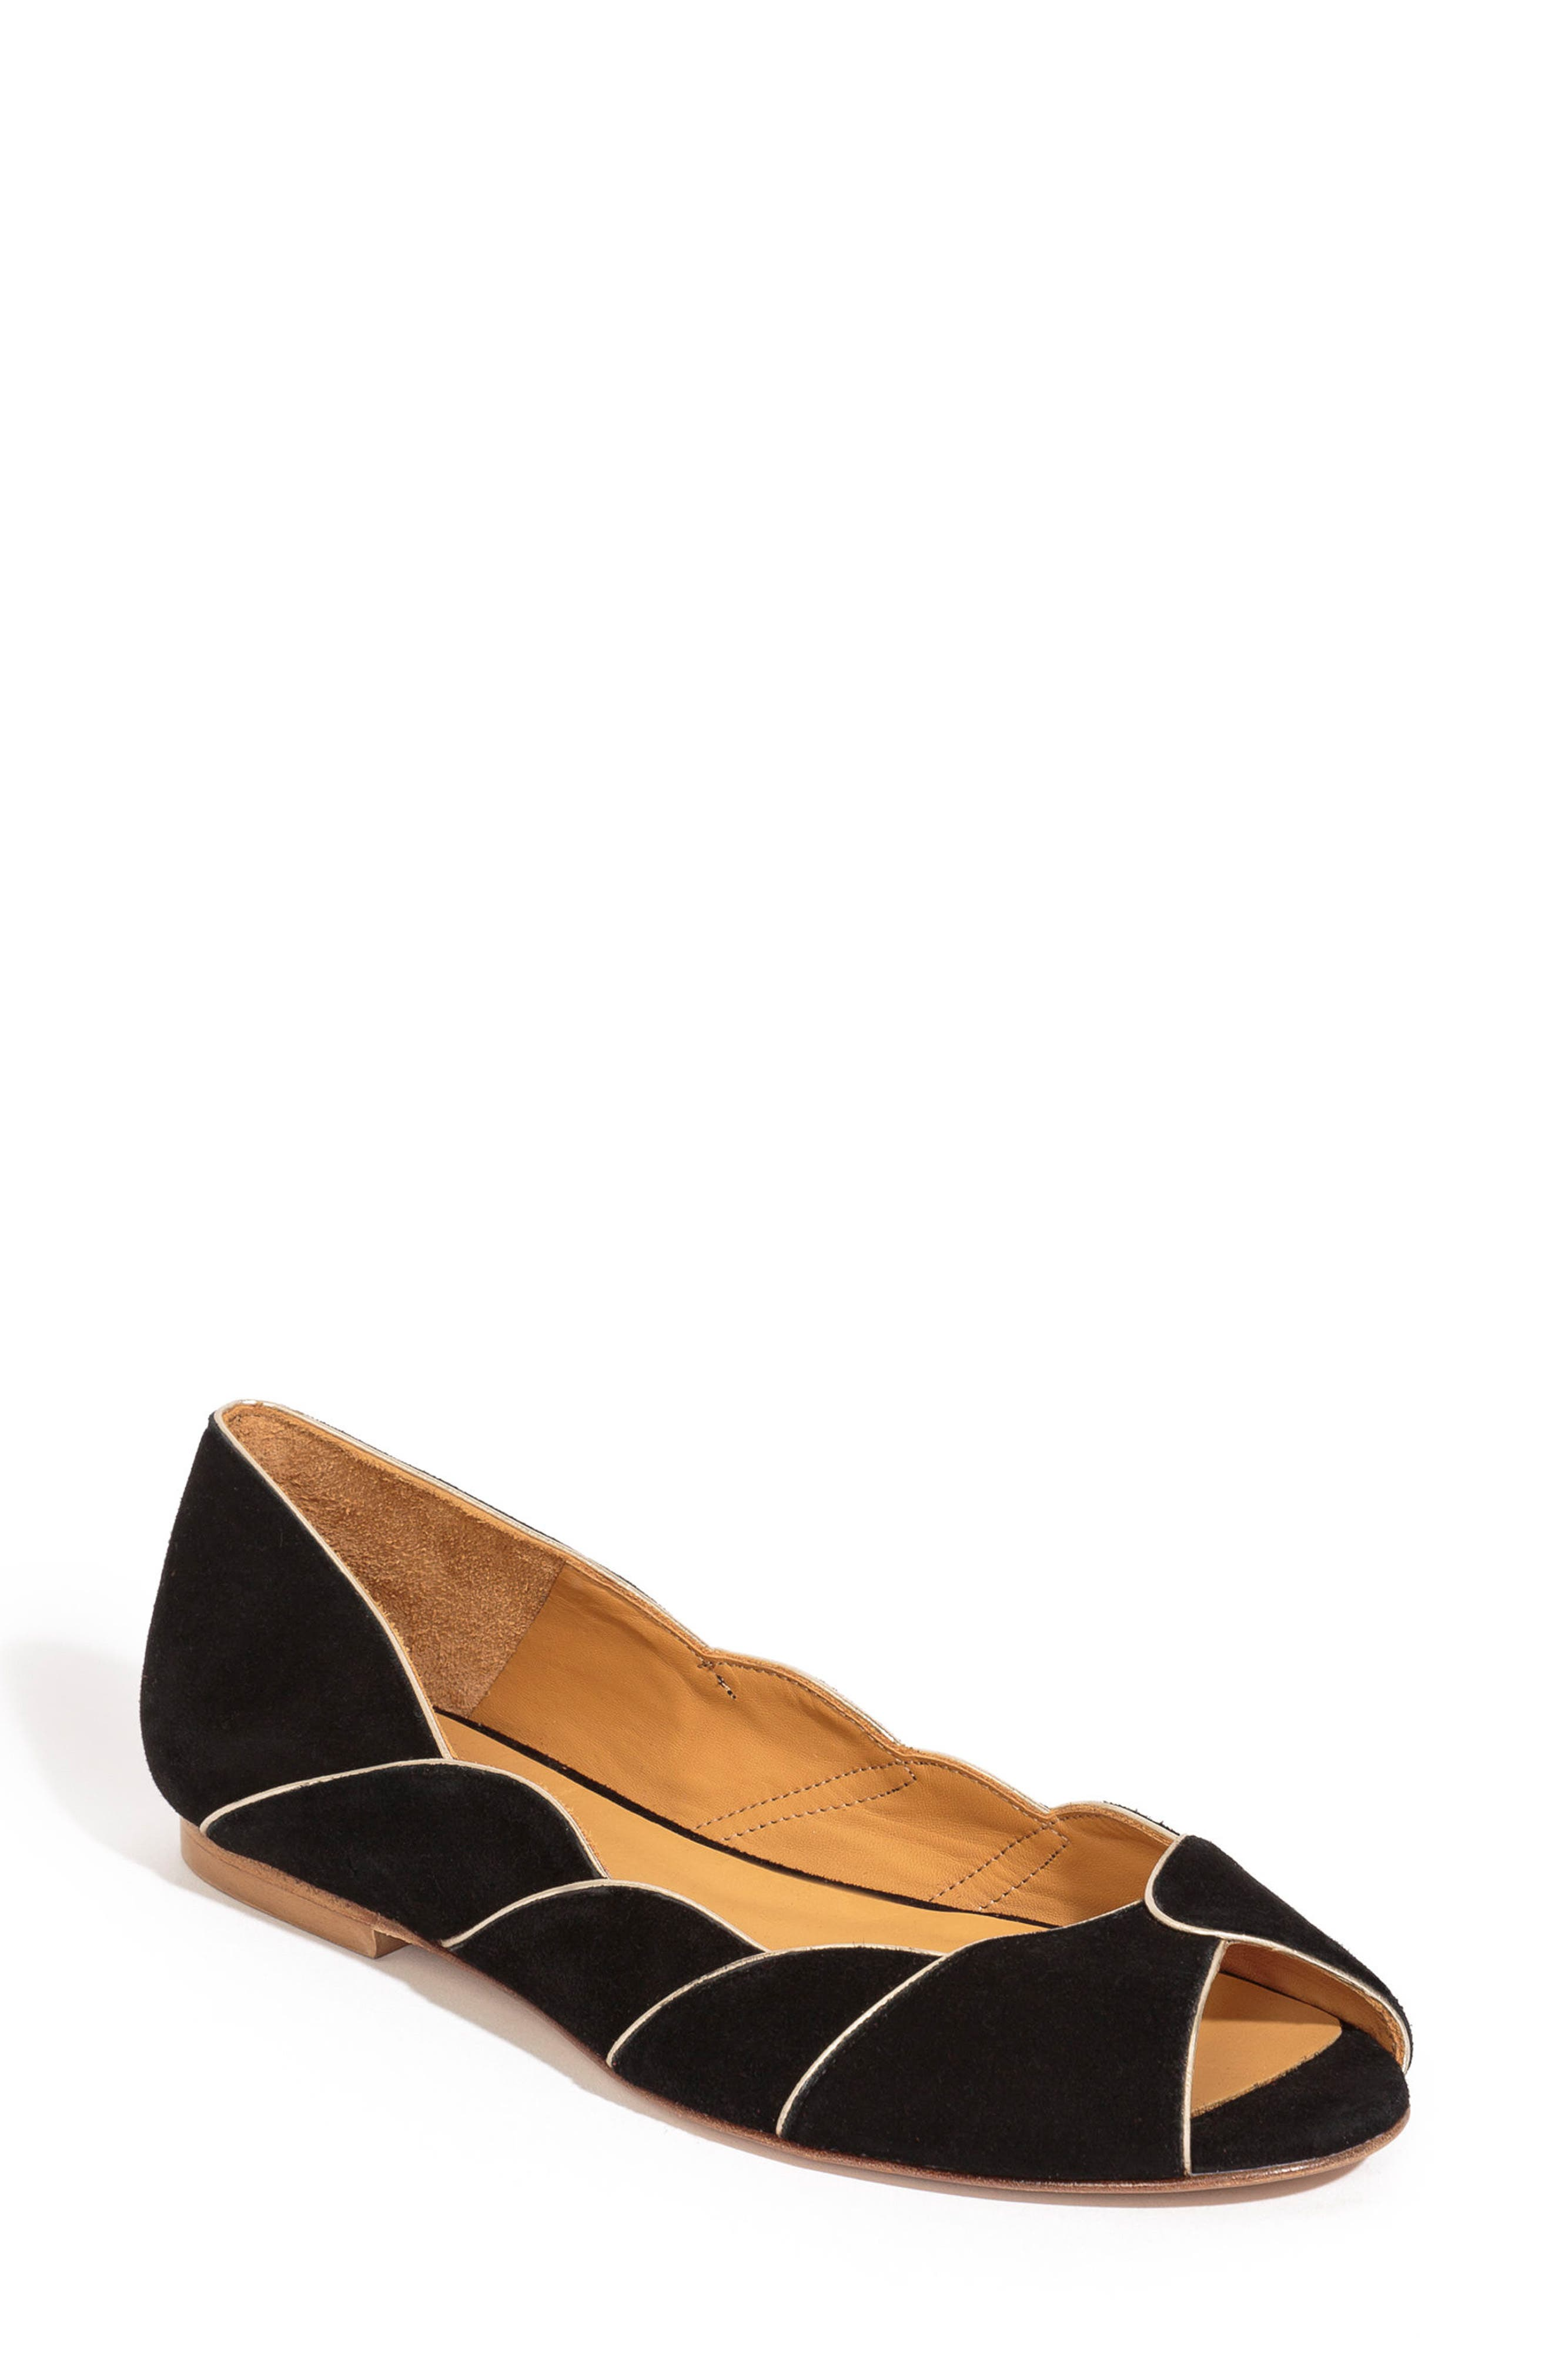 Suzanne Peep Toe Flat,                         Main,                         color, BLACK/ GOLD SUEDE